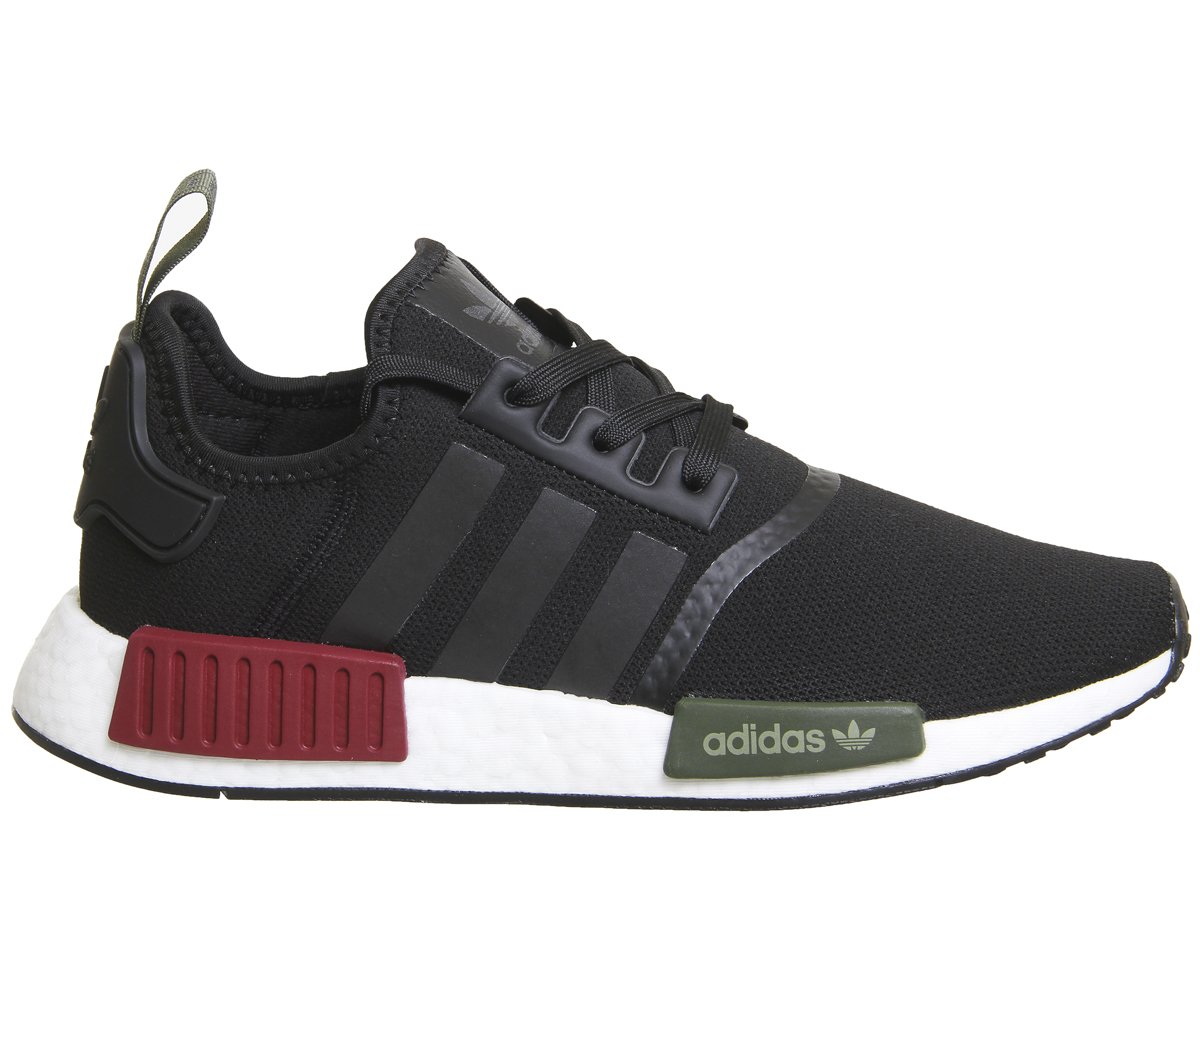 1178eed0b Sentinel Adidas Nmd R1 Trainers Black Burgundy Olive Exclusive Trainers  Shoes